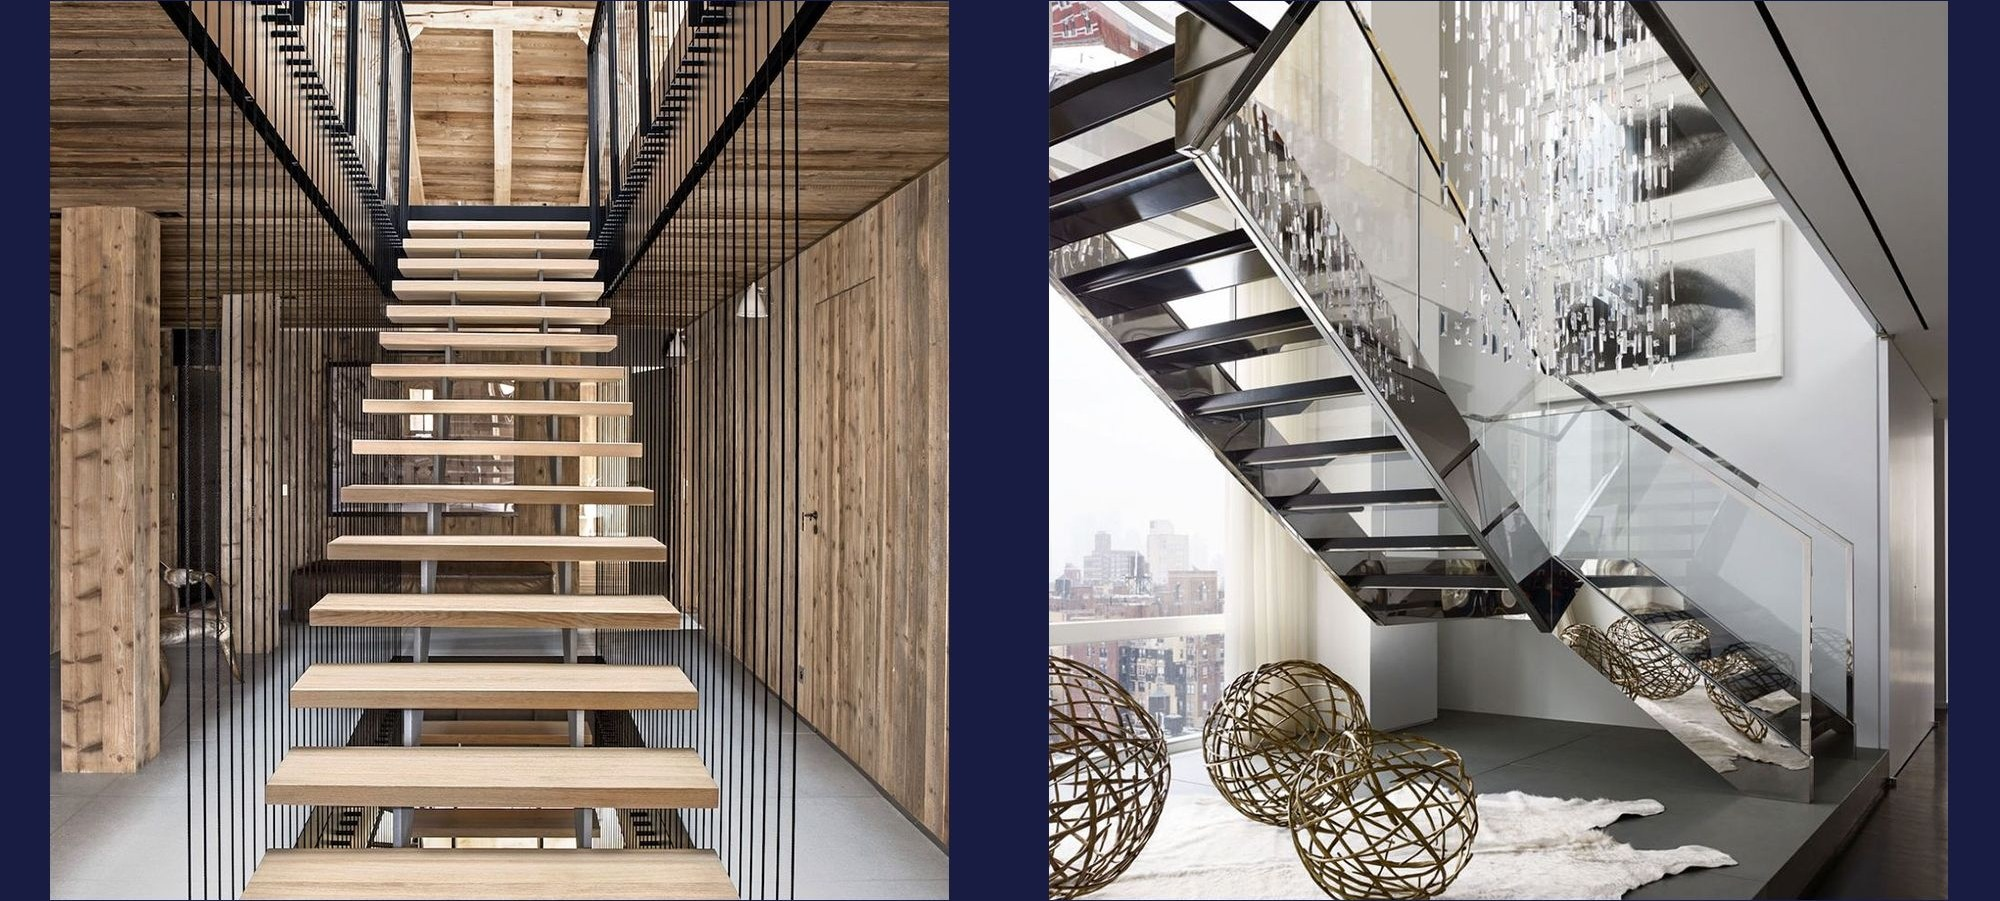 20 Striking Open Stairs Modern Open Staircase Design Ideas   Stairs Made Of Wood   5 Step   Elegant   Solid Oak   Traditional   3 Step